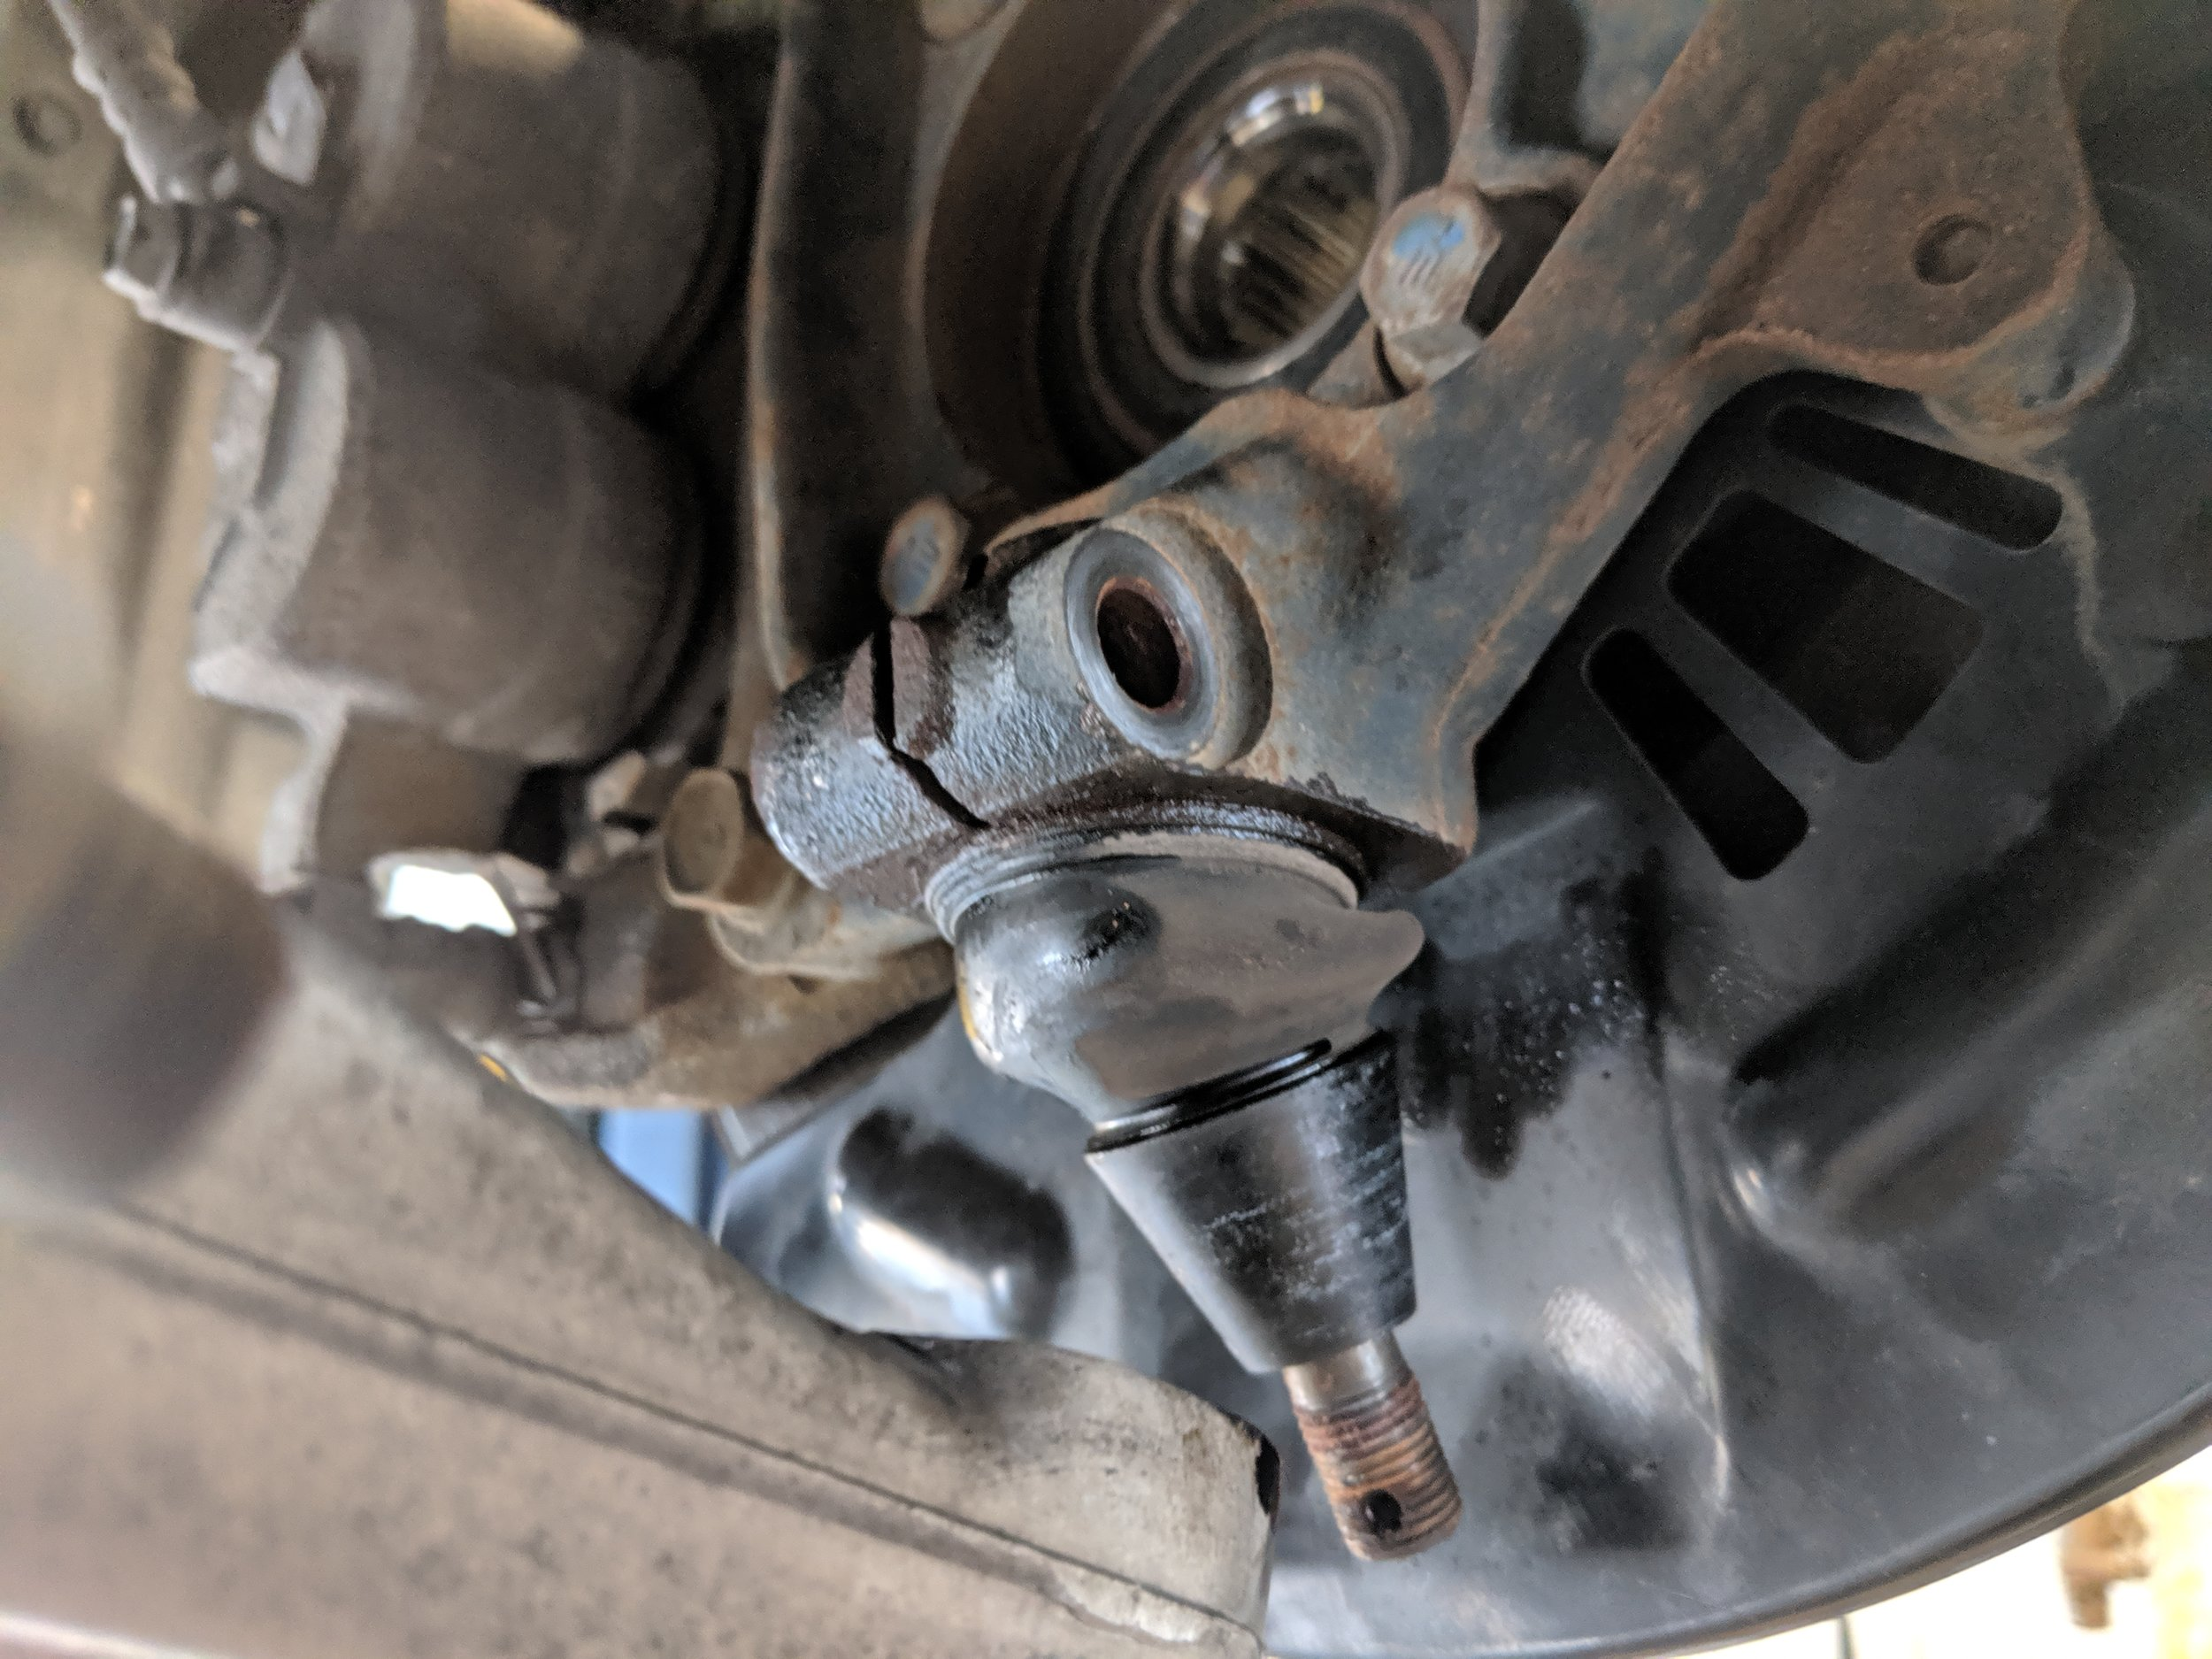 Removing the lower ball joint is the other method to pull the axle shaft out.